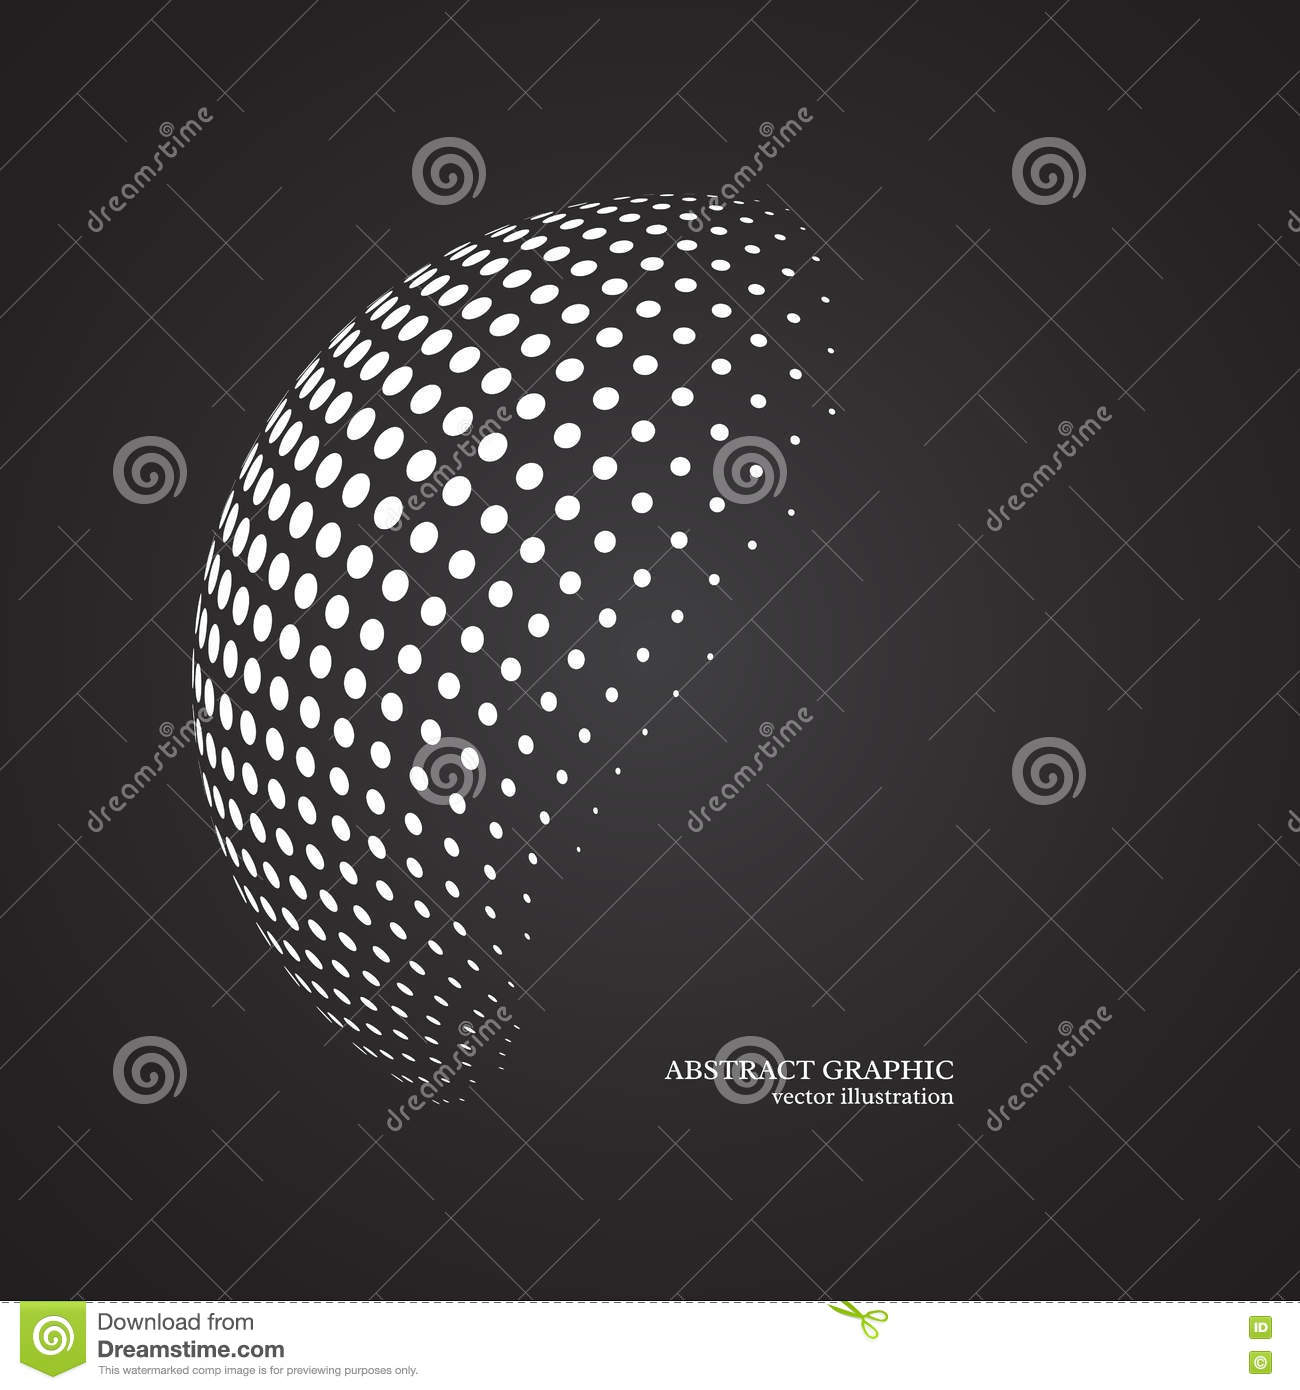 royalty free illustration abstract globe dotted sphere 3d halftone dot effect white colo stock illustration - Free Colo